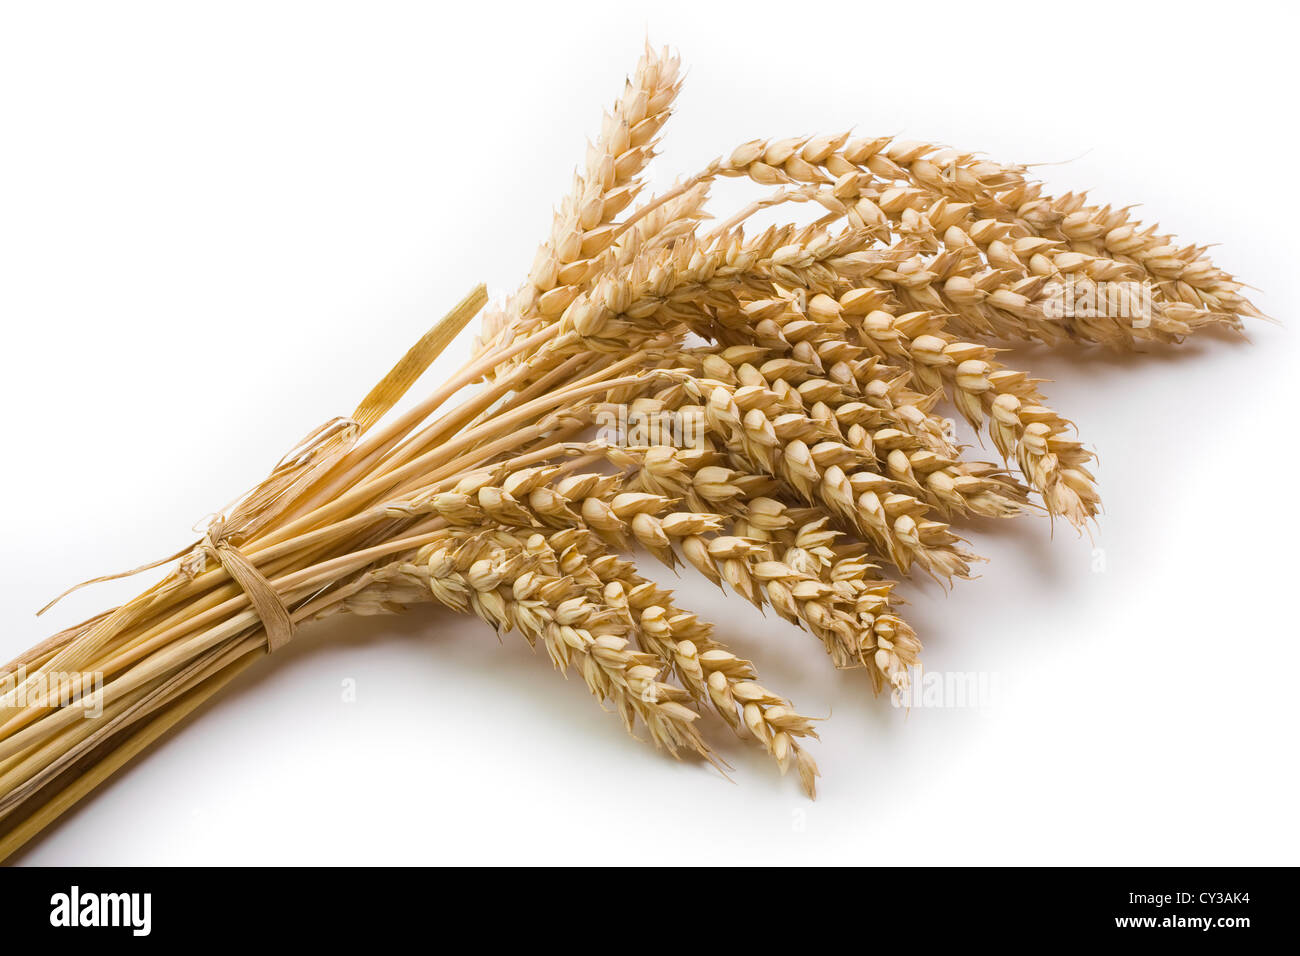 Cereal and wheat spike on bright background - Stock Image